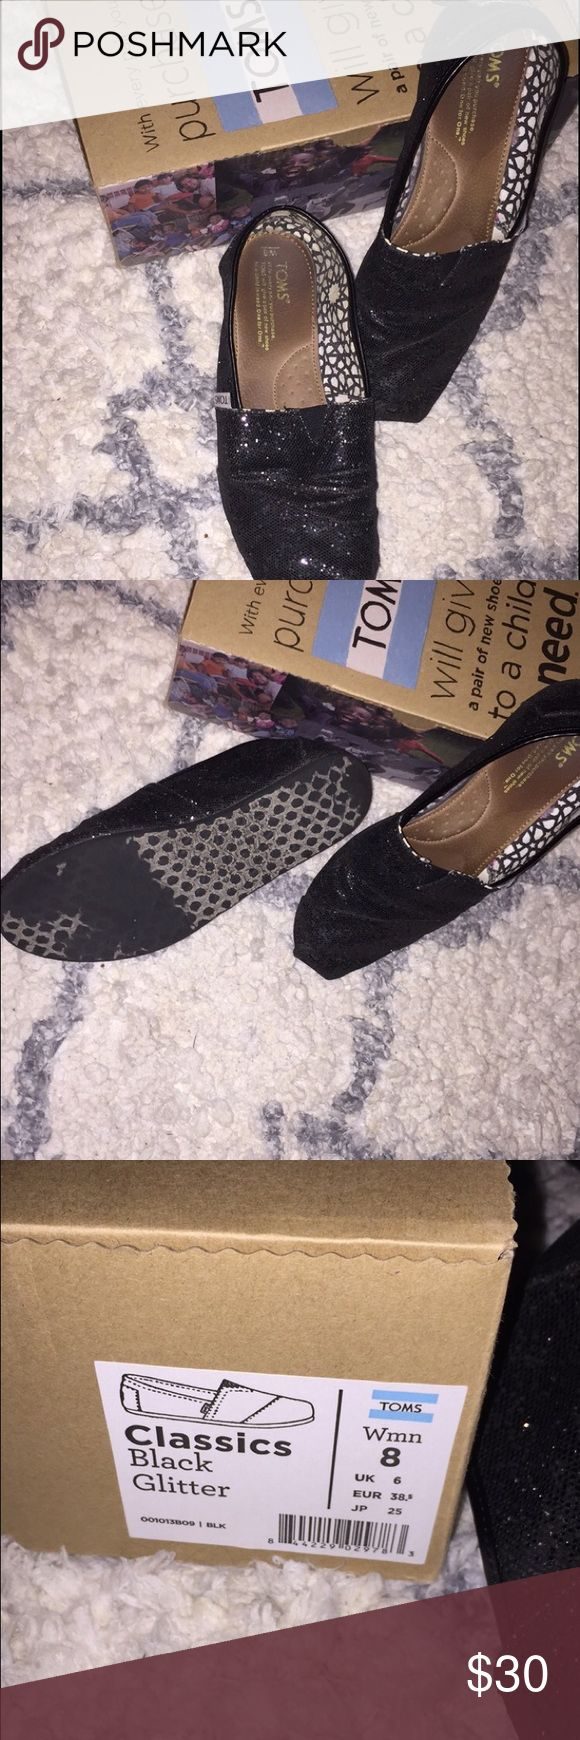 Black Glitter Toms Black glitter toms that have been gently used. No flaws just have been worn! Make me an offer trying to get rid of stuff and clean out! Hope to give these a lovely new home! TOMS Shoes Flats & Loafers